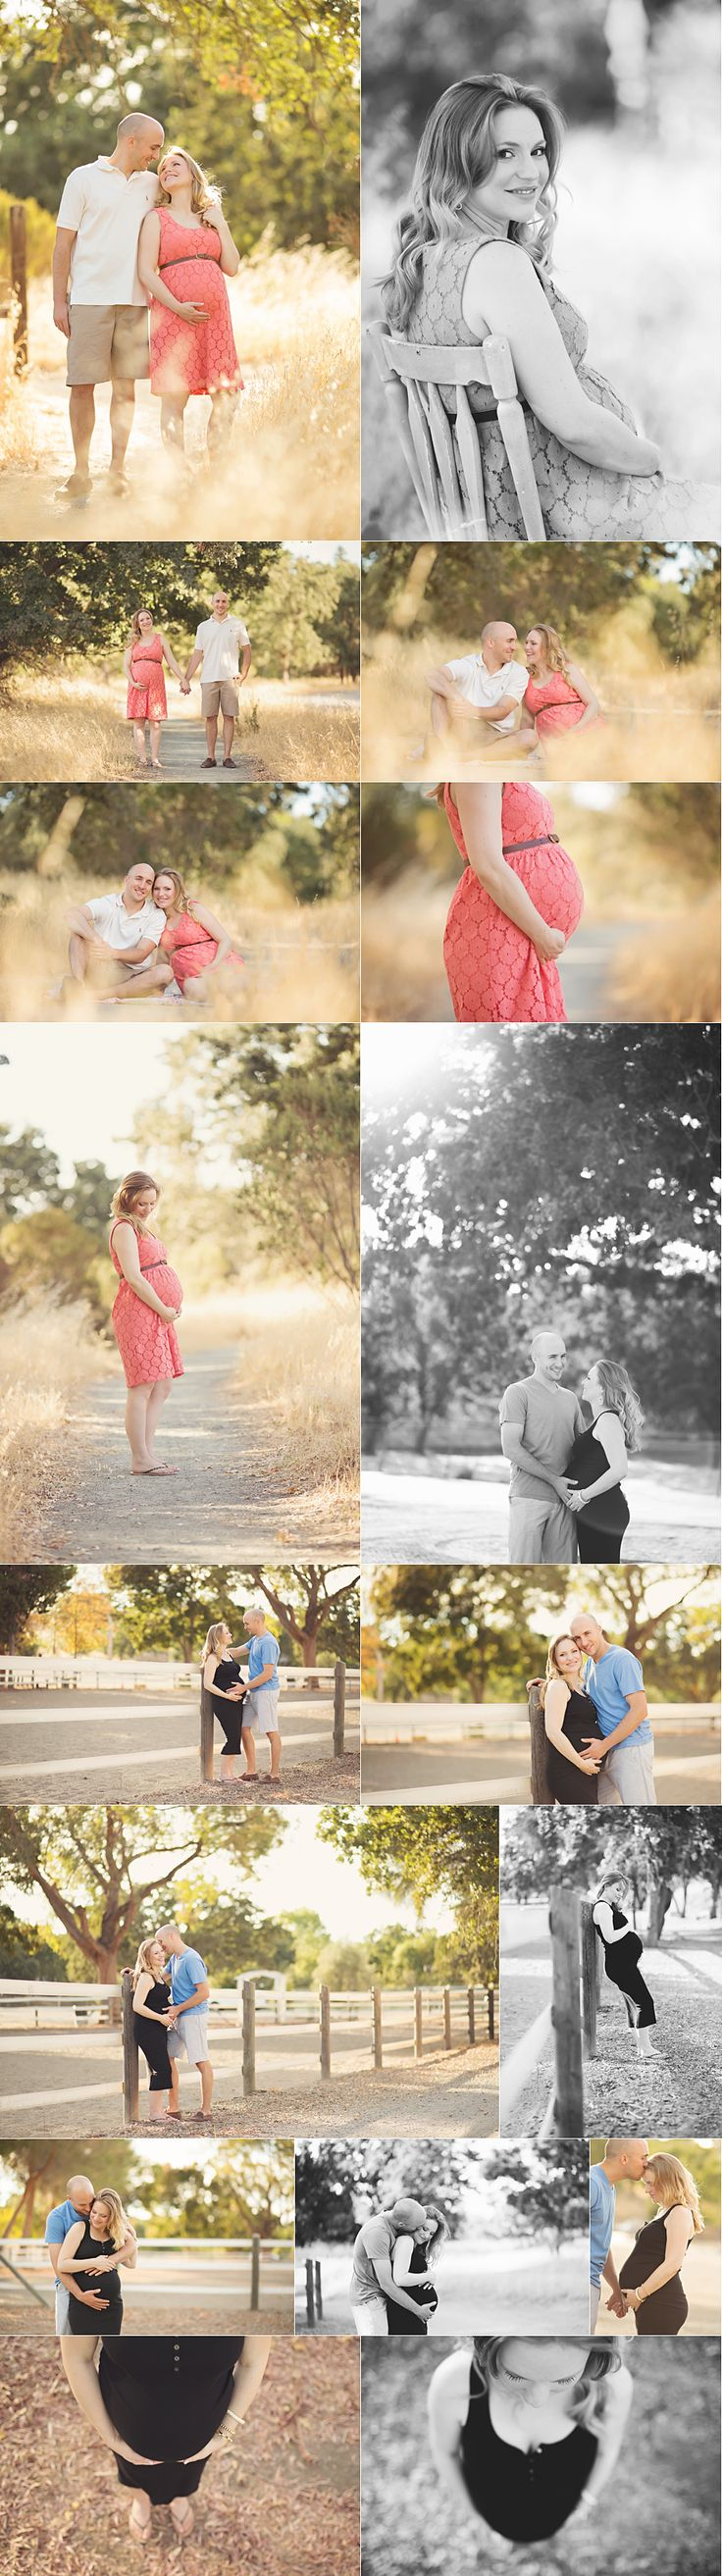 twin maternity session | corinne mccombs photography